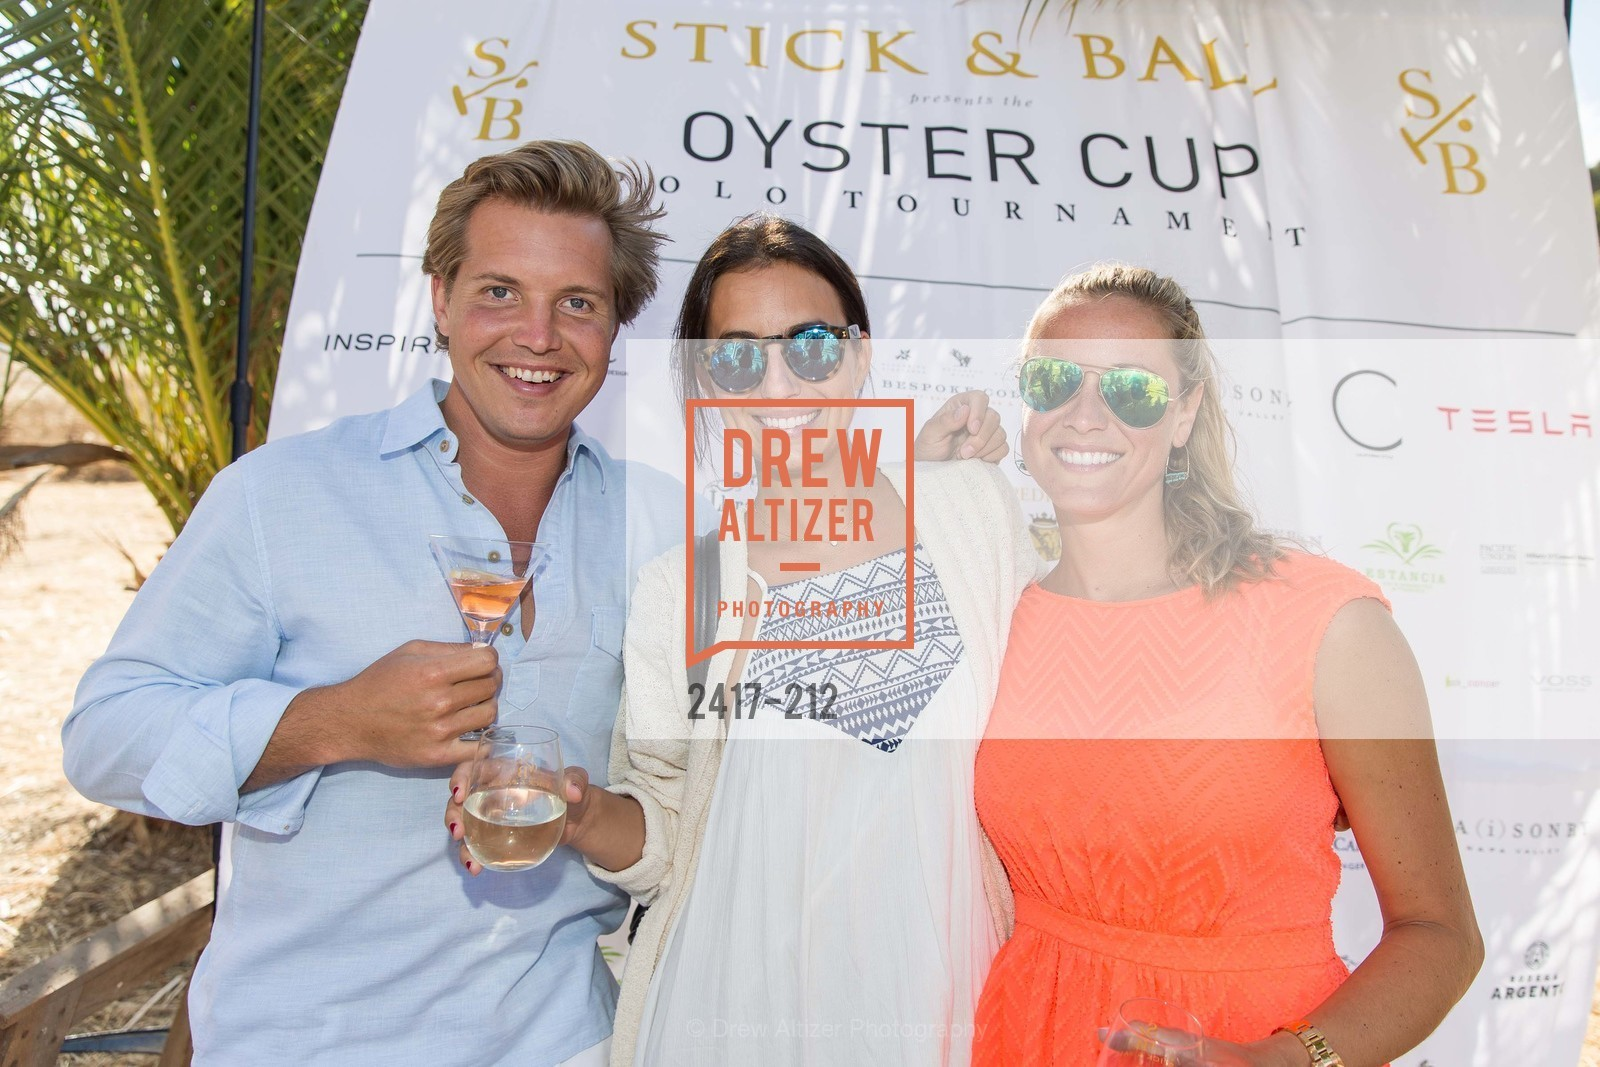 David McDonough, Reny Prusker, Katie Wolf, Stick & Ball Oyster Cup Polo Tournament, Cerro Pampa Polo Club, July 25th, 2015,Drew Altizer, Drew Altizer Photography, full-service agency, private events, San Francisco photographer, photographer california